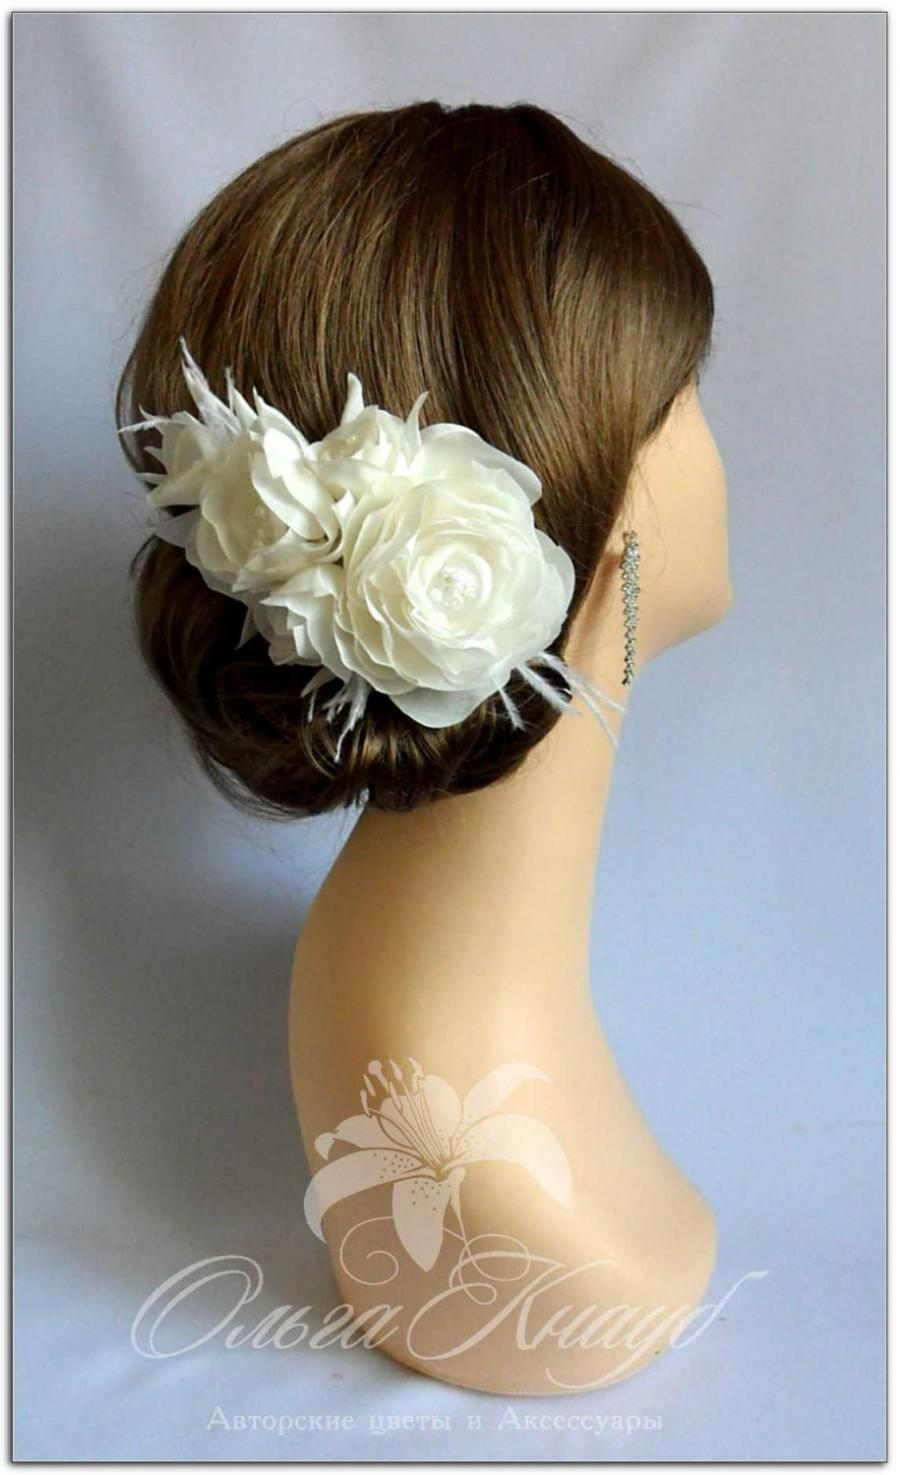 Mariage - Wedding Hair Accessories - Flower Headpiece, Wedding Hair Flowers, Handmade Fascinator, Birdcage Veil, Vintage Headpiece